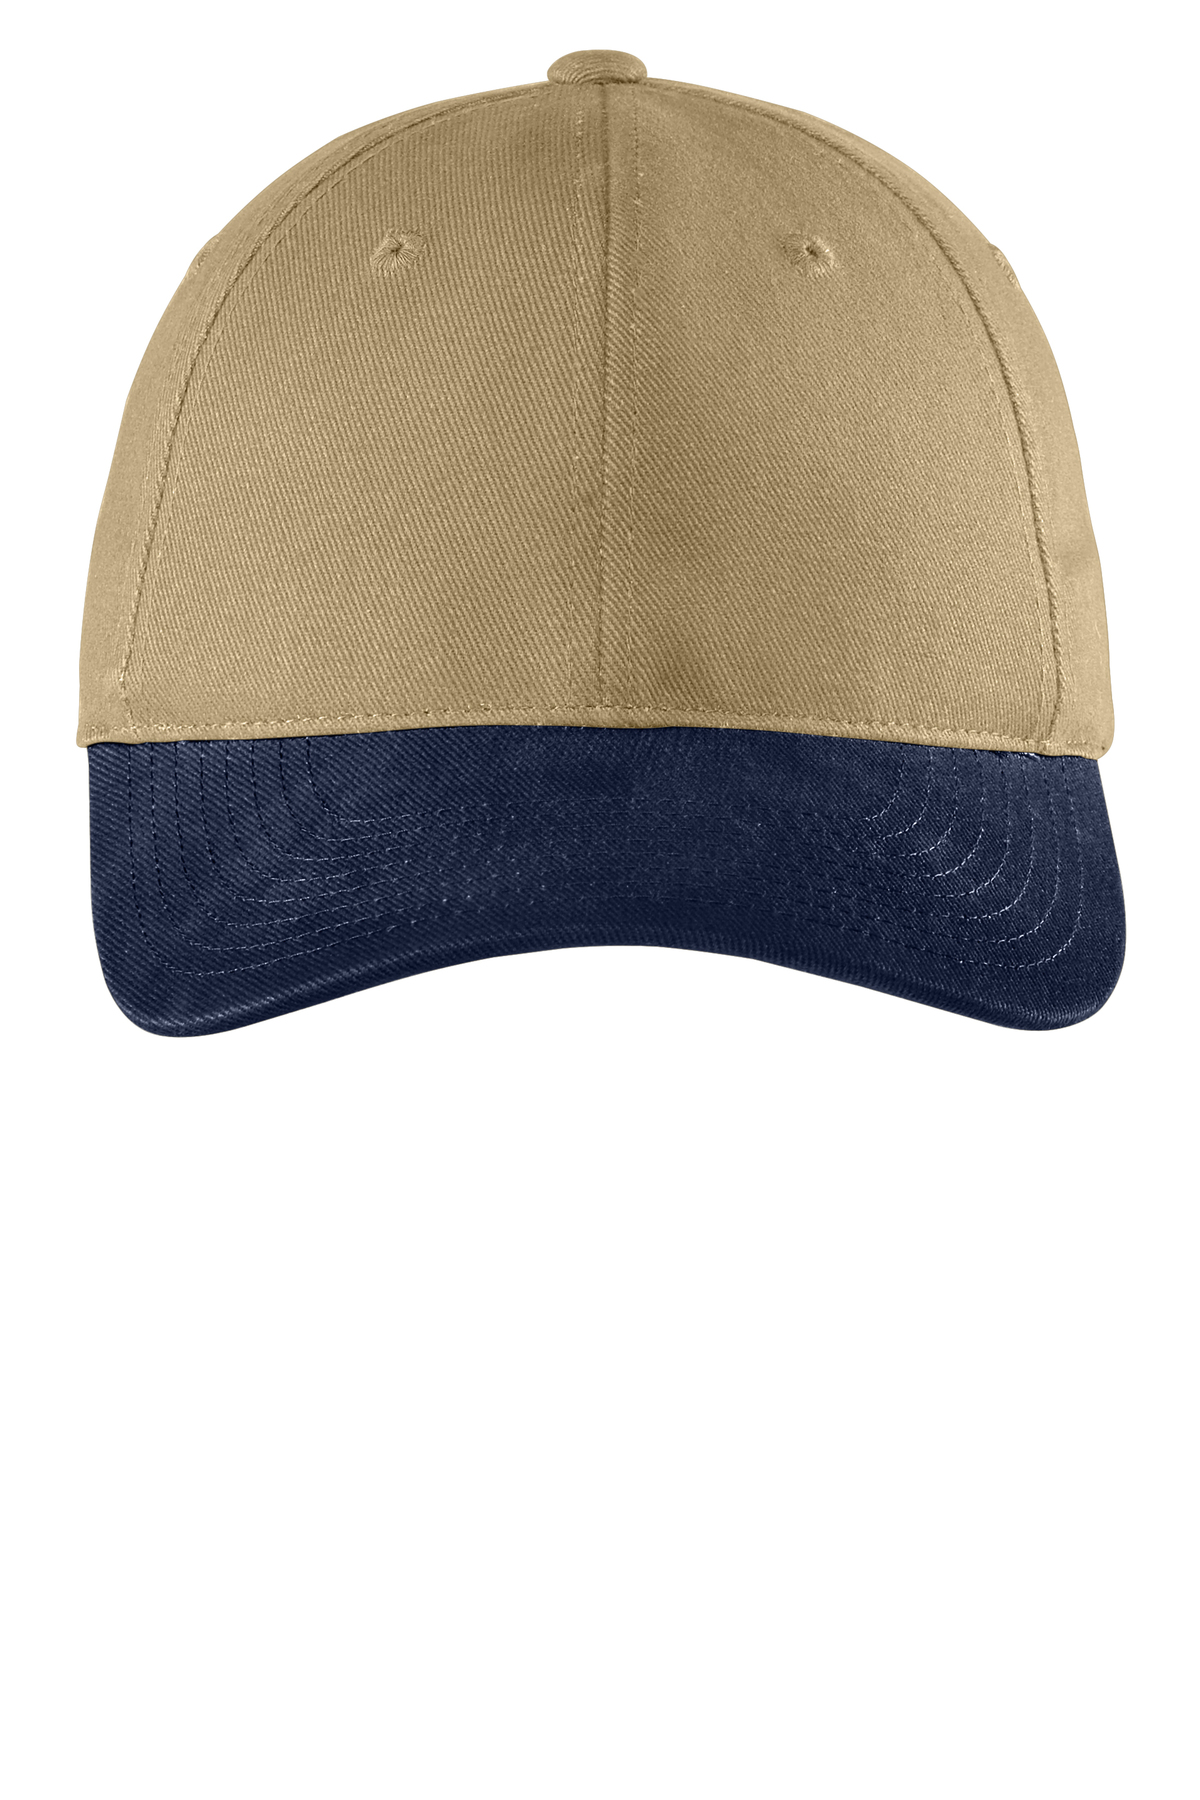 C815 Port Authority Two-Tone Brushed Twill Cap